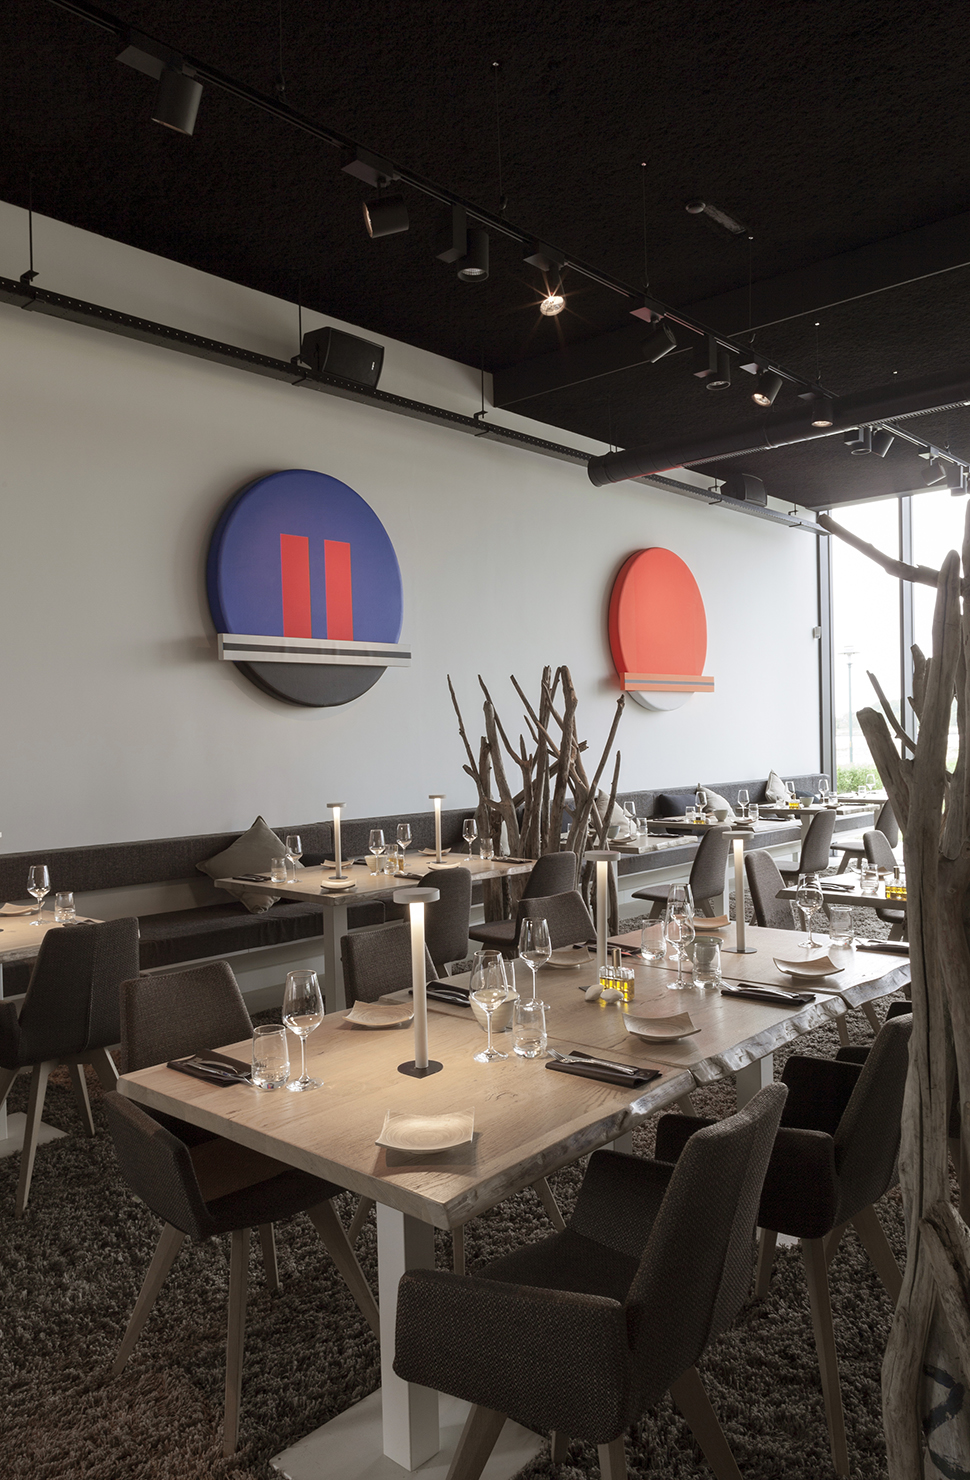 LO by wout bru winter 2014 pop up restaurant